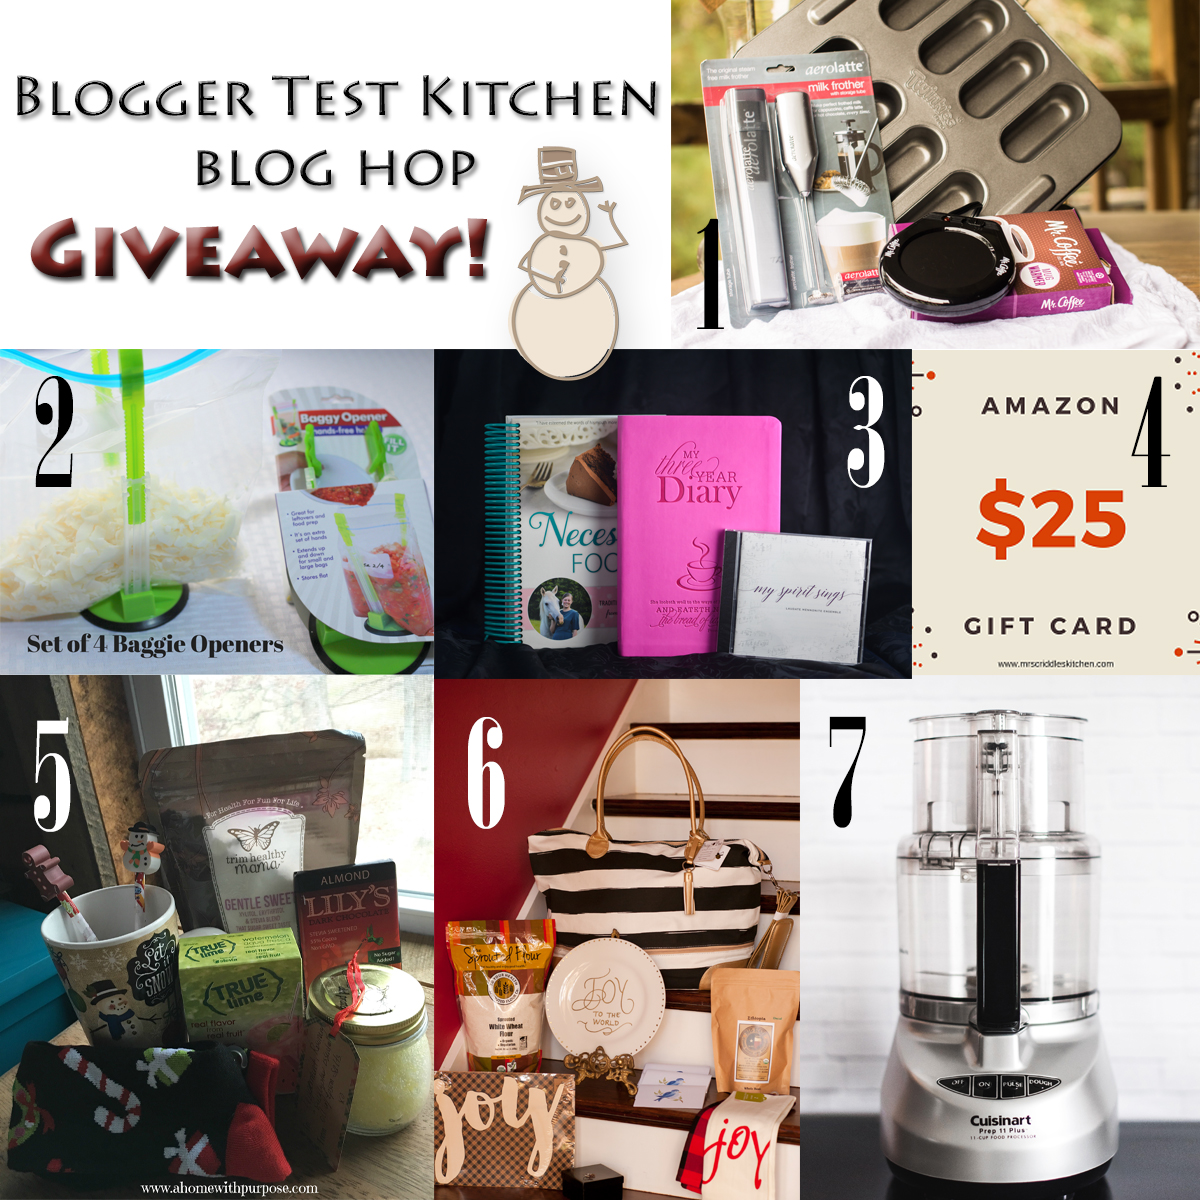 Charmant Blogger Test Kitchen Blog Hop Giveaway 2016